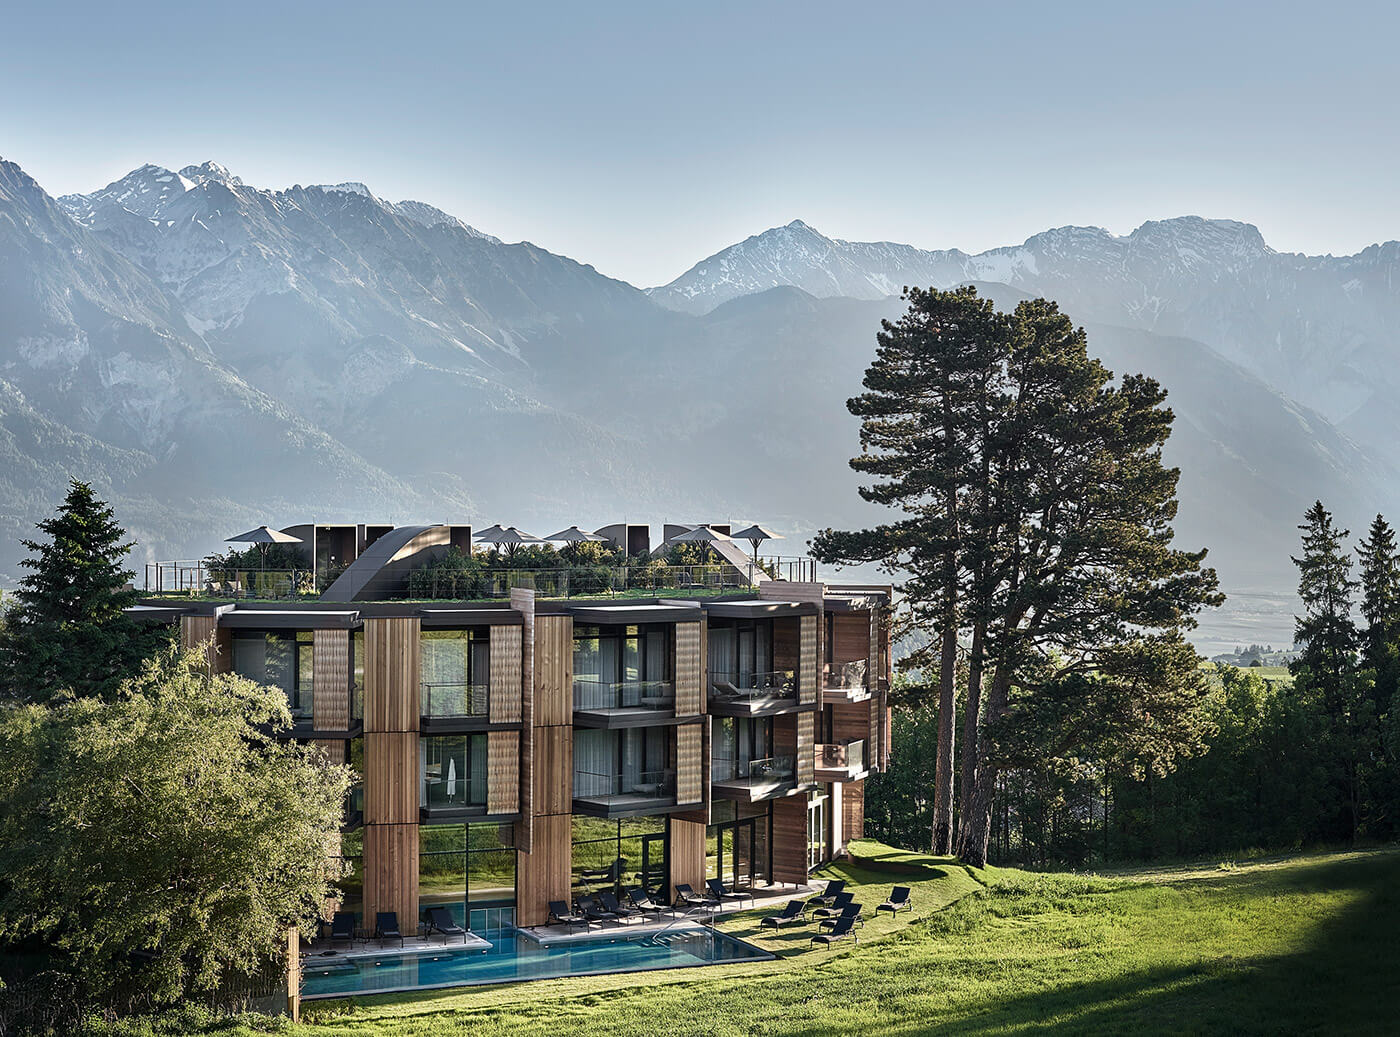 Picture of the Resort Lans building in surrounded by mountains